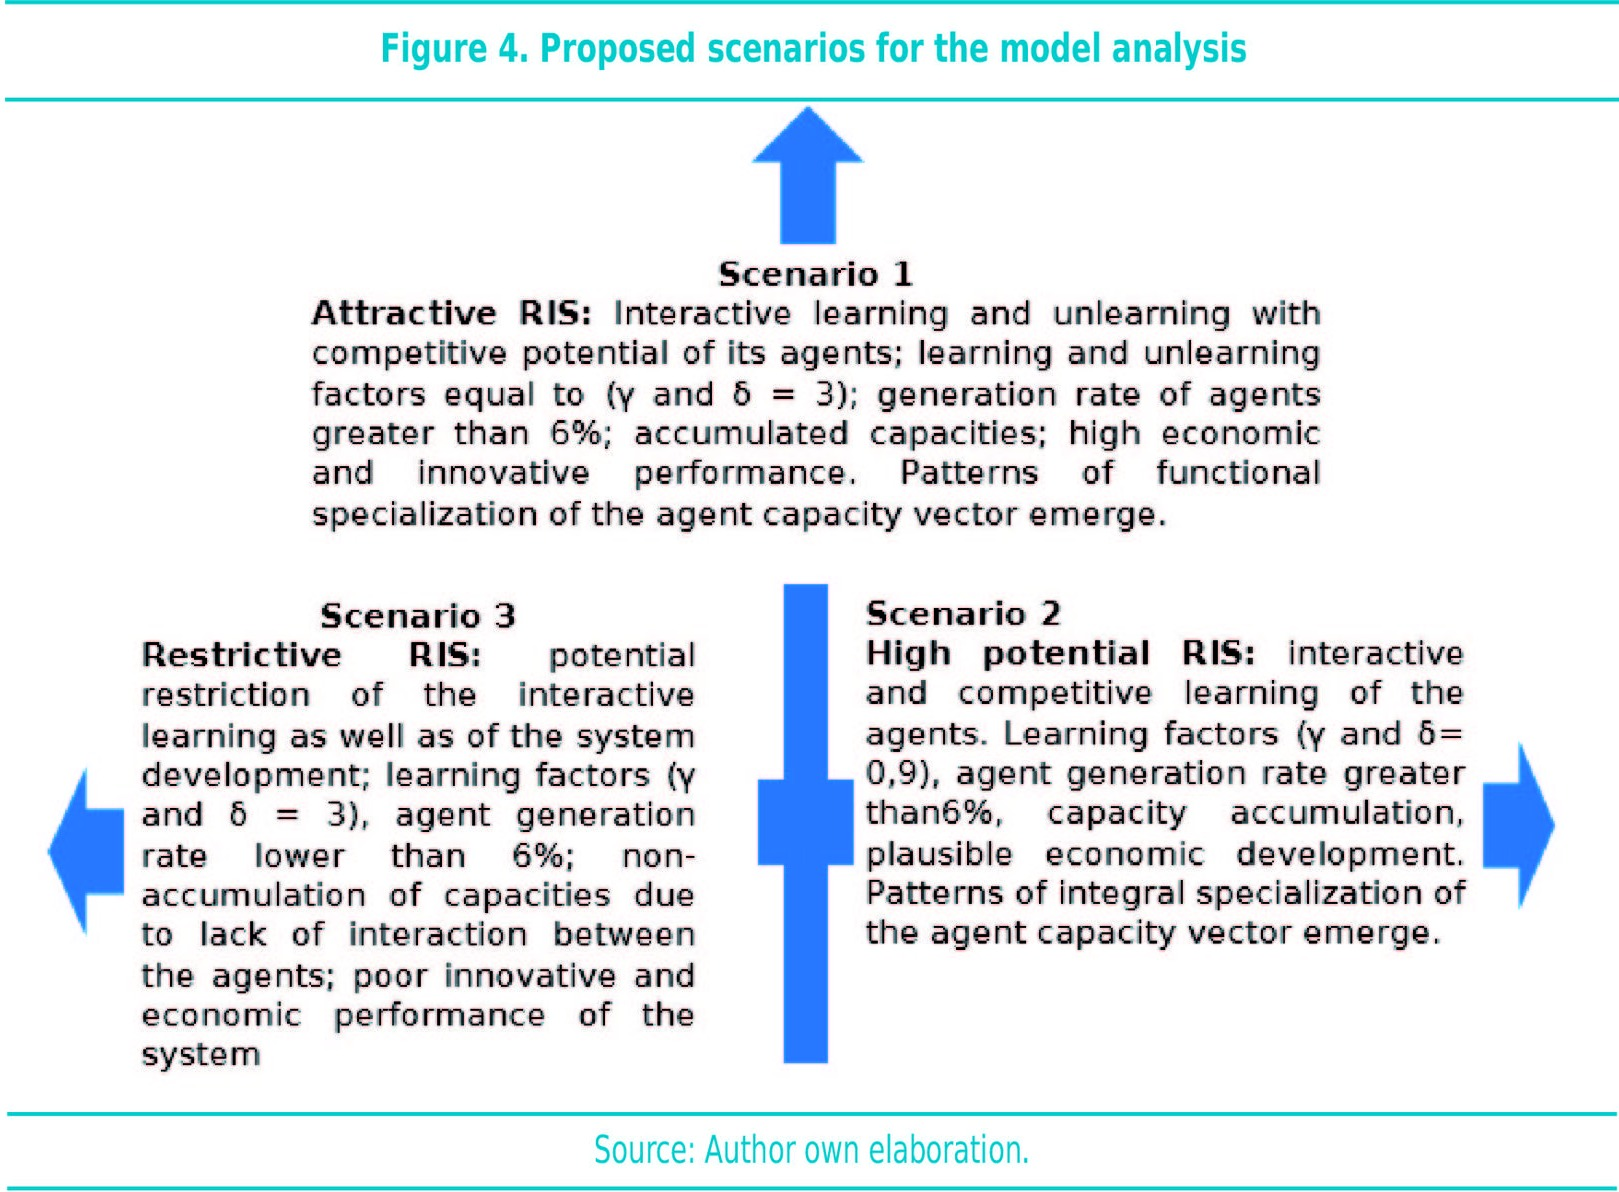 Proposed scenarios for the model analysis